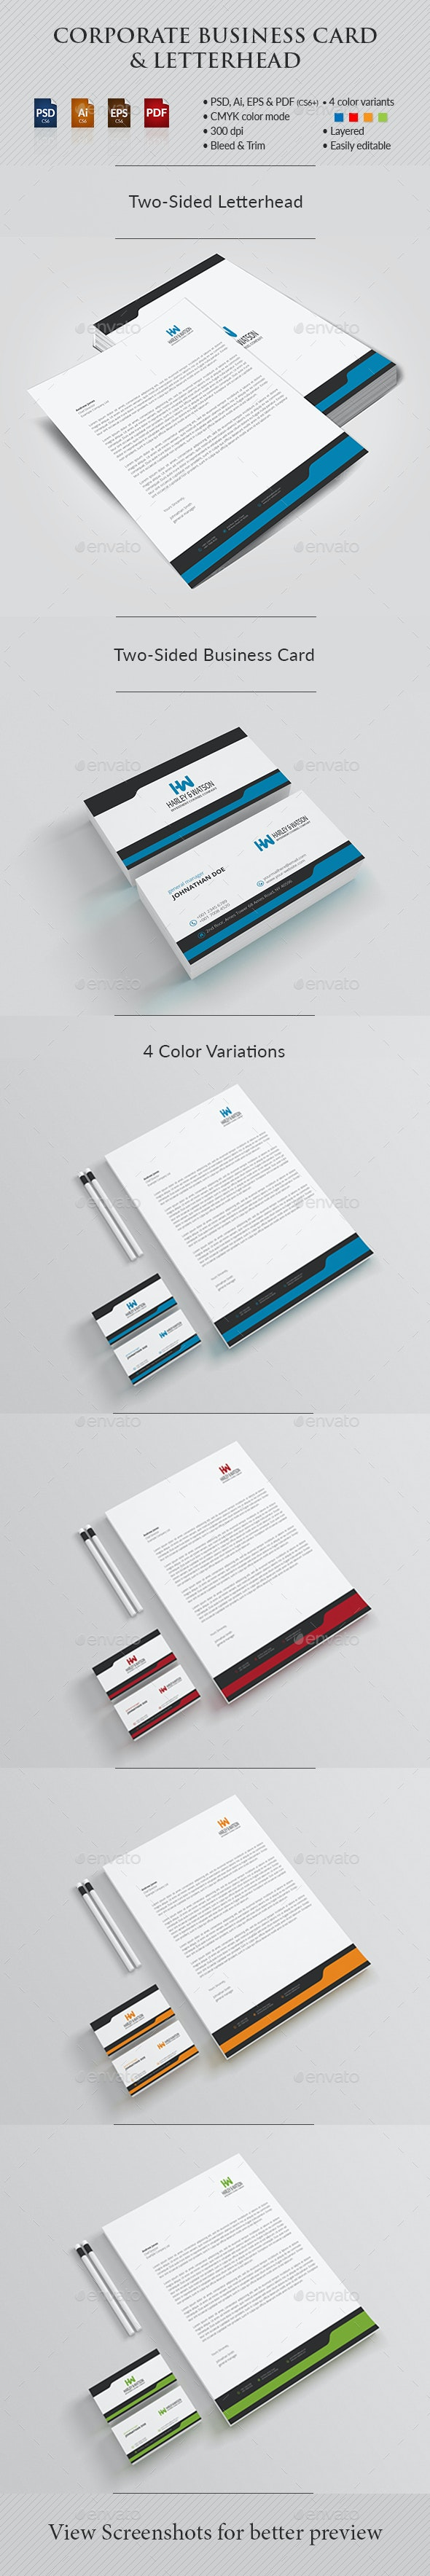 Corporate Business Card & Letterhead - Stationery Print Templates